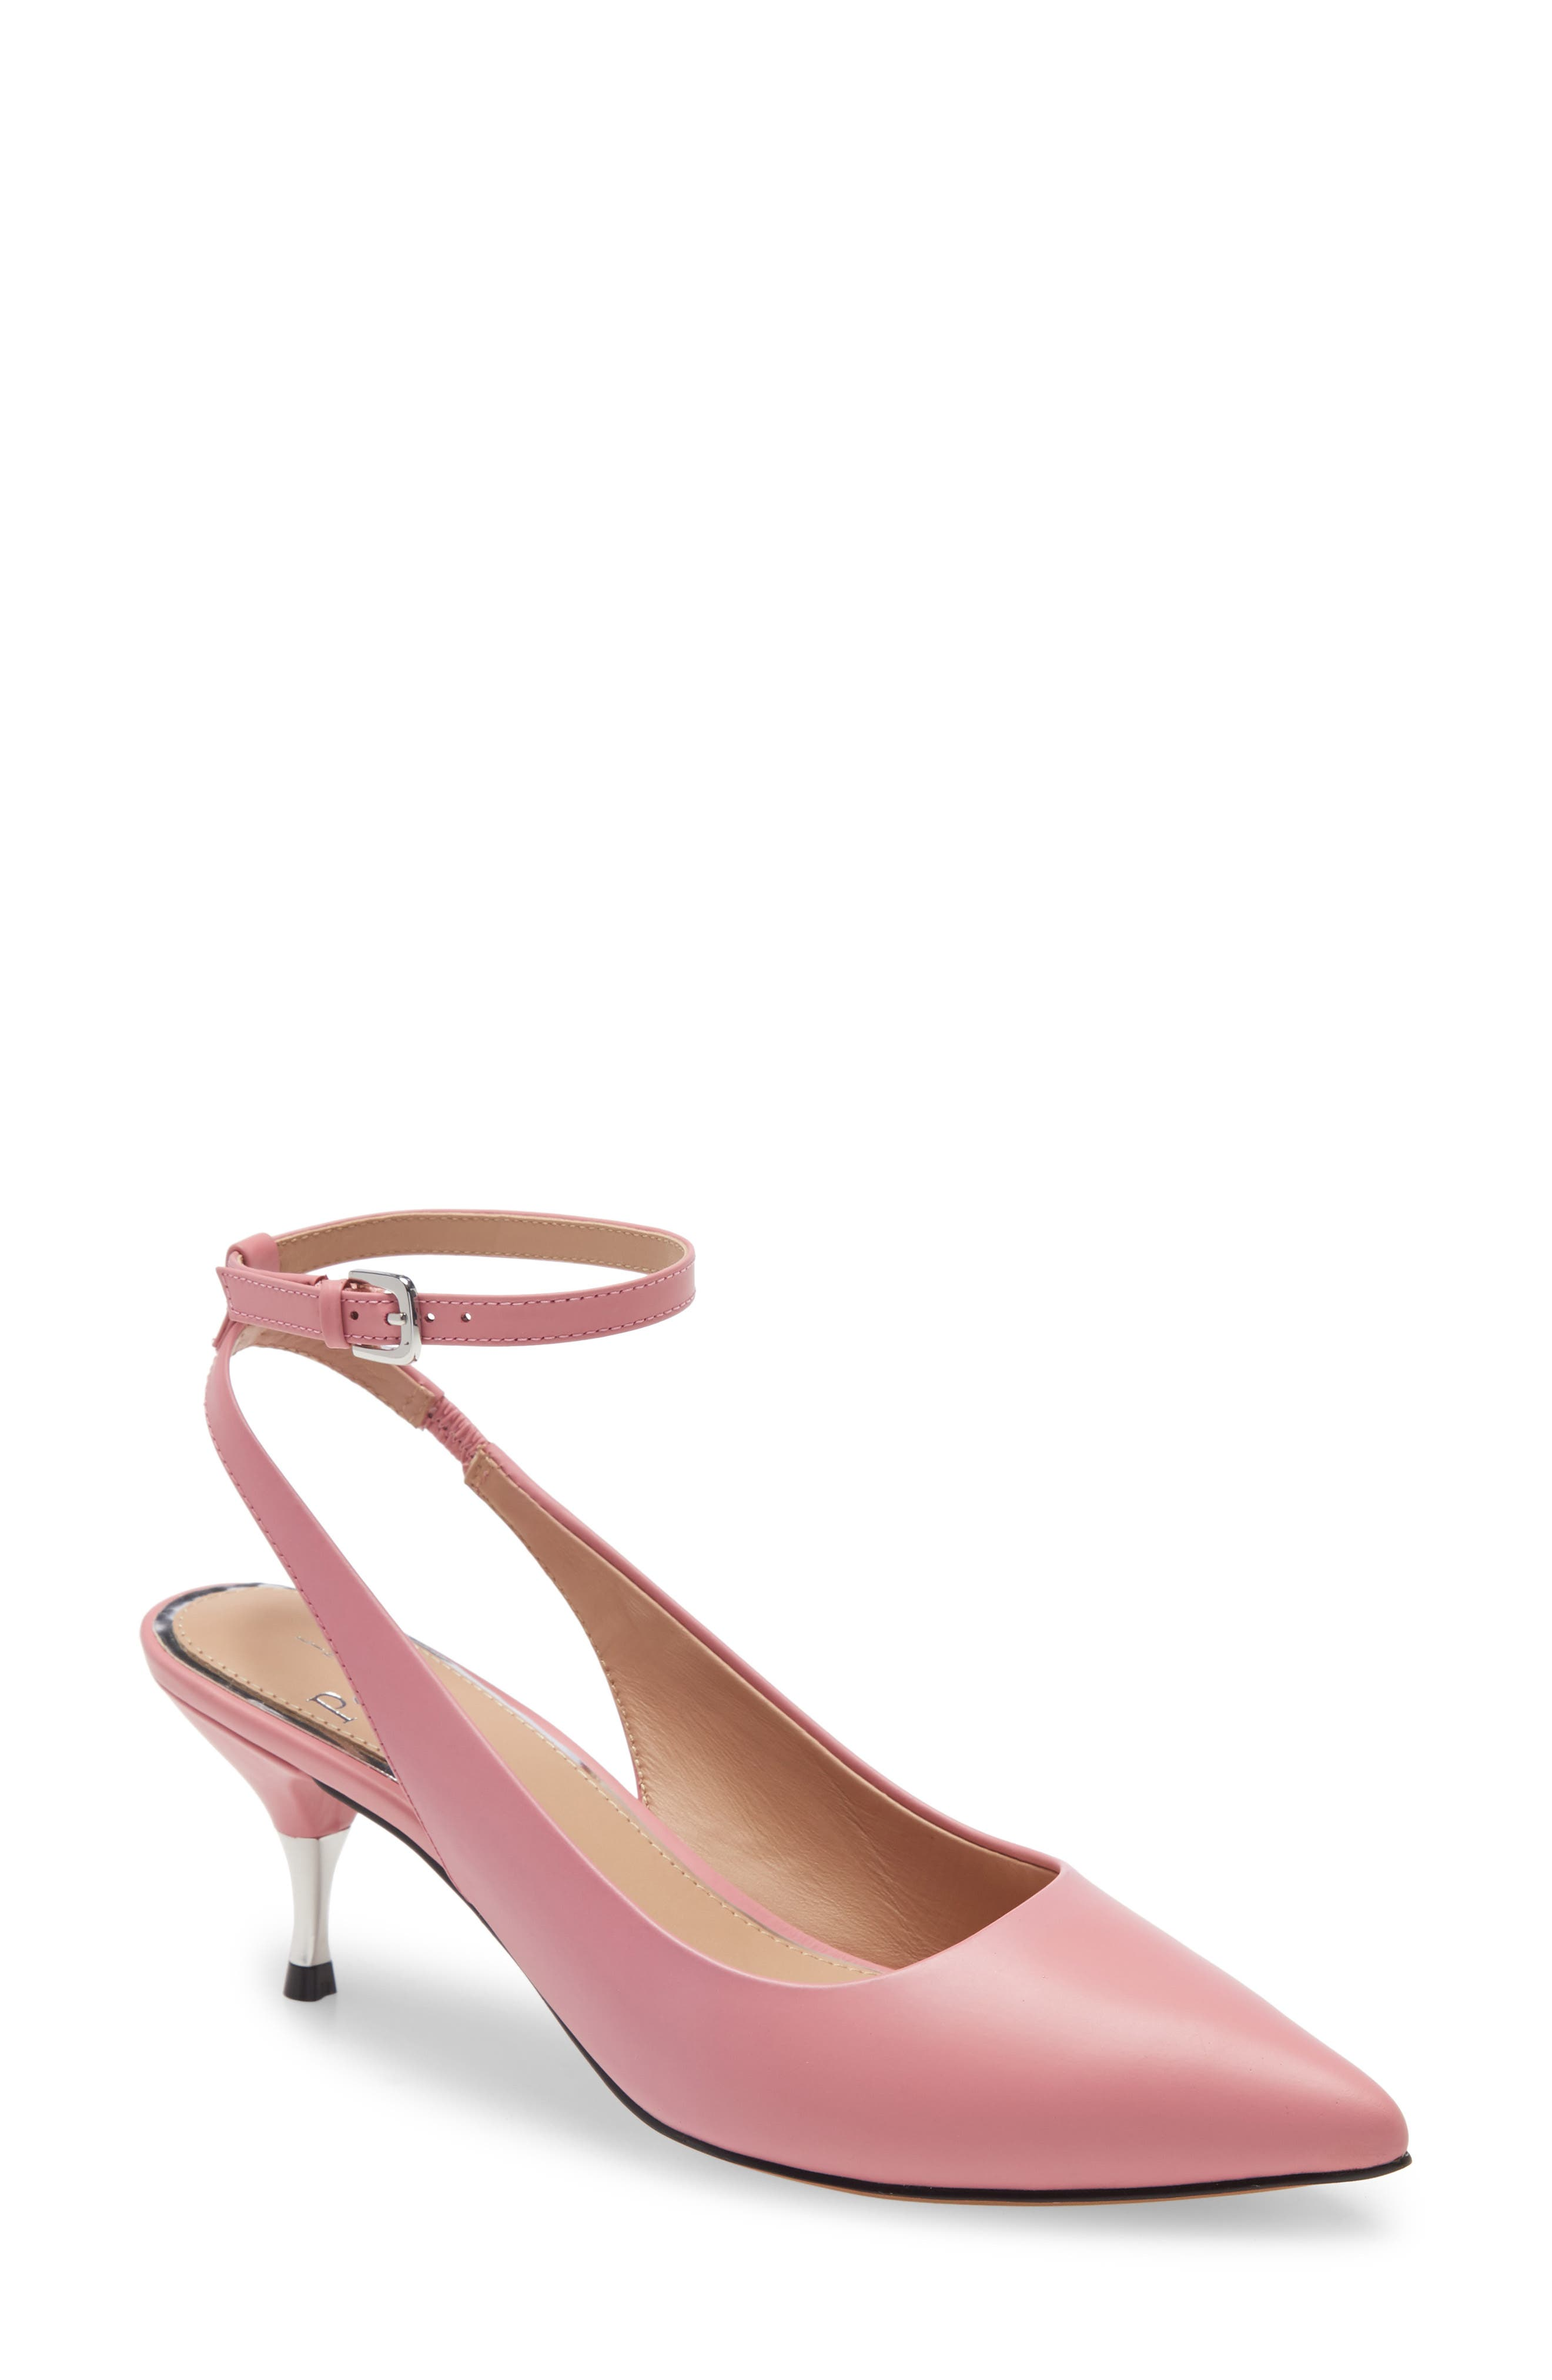 A two-tone tapered heel lifts a poised pointy-toe pump secured by a svelte strap at the ankle. Style Name: Linea Paolo Callen Slingback Pump (Women). Style Number: 6014300. Available in stores.